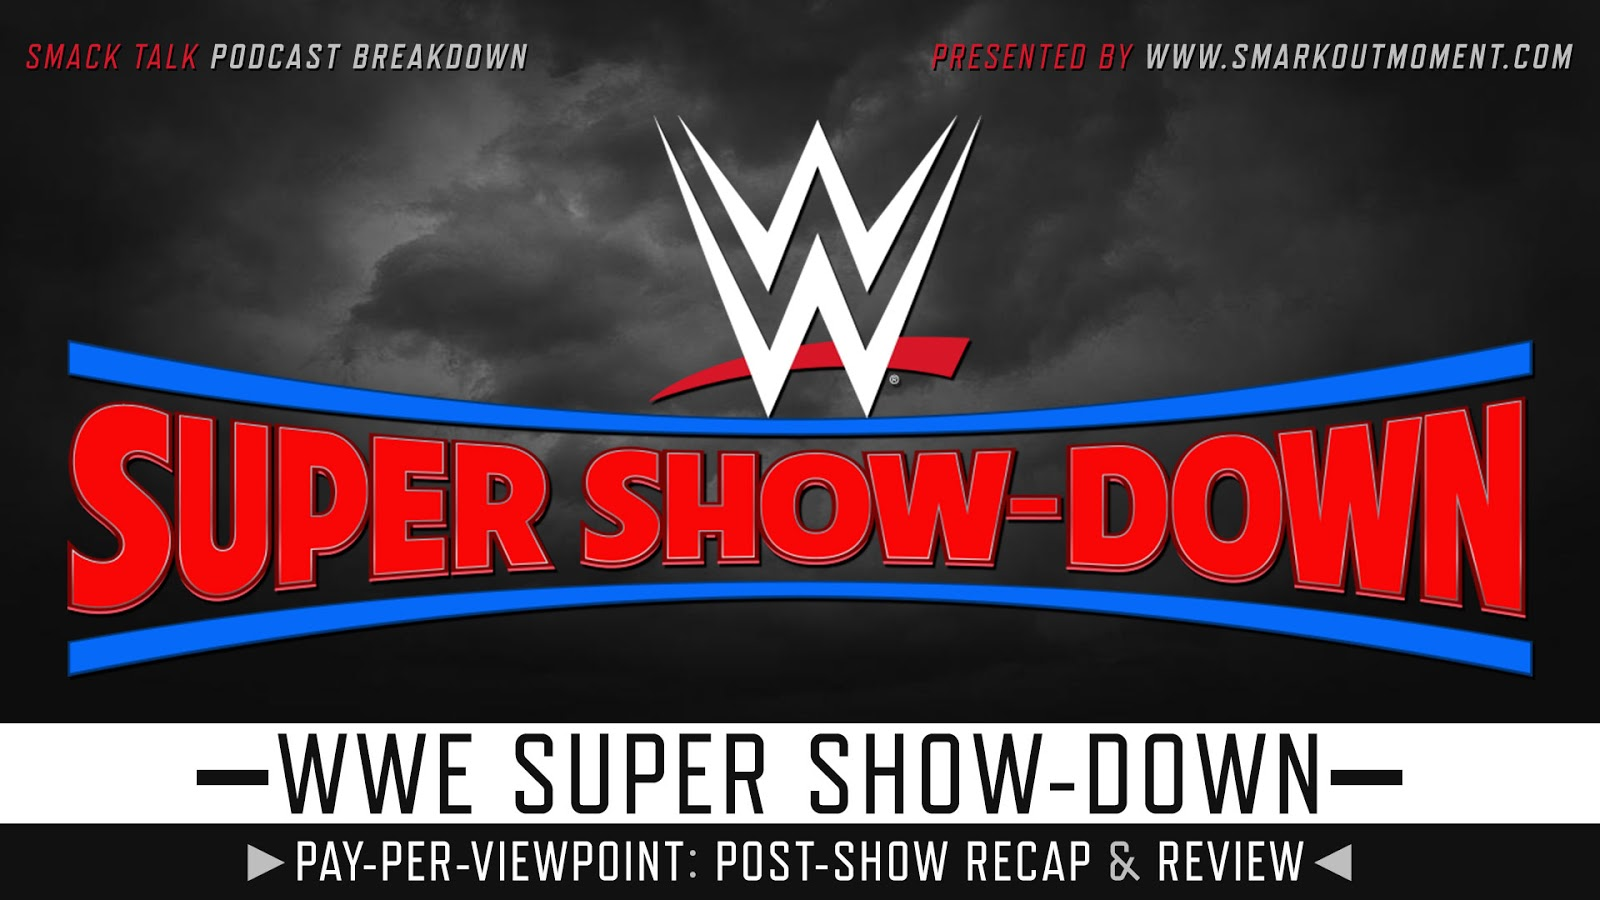 WWE Super Show-Down 2018 Recap and Review Podcast